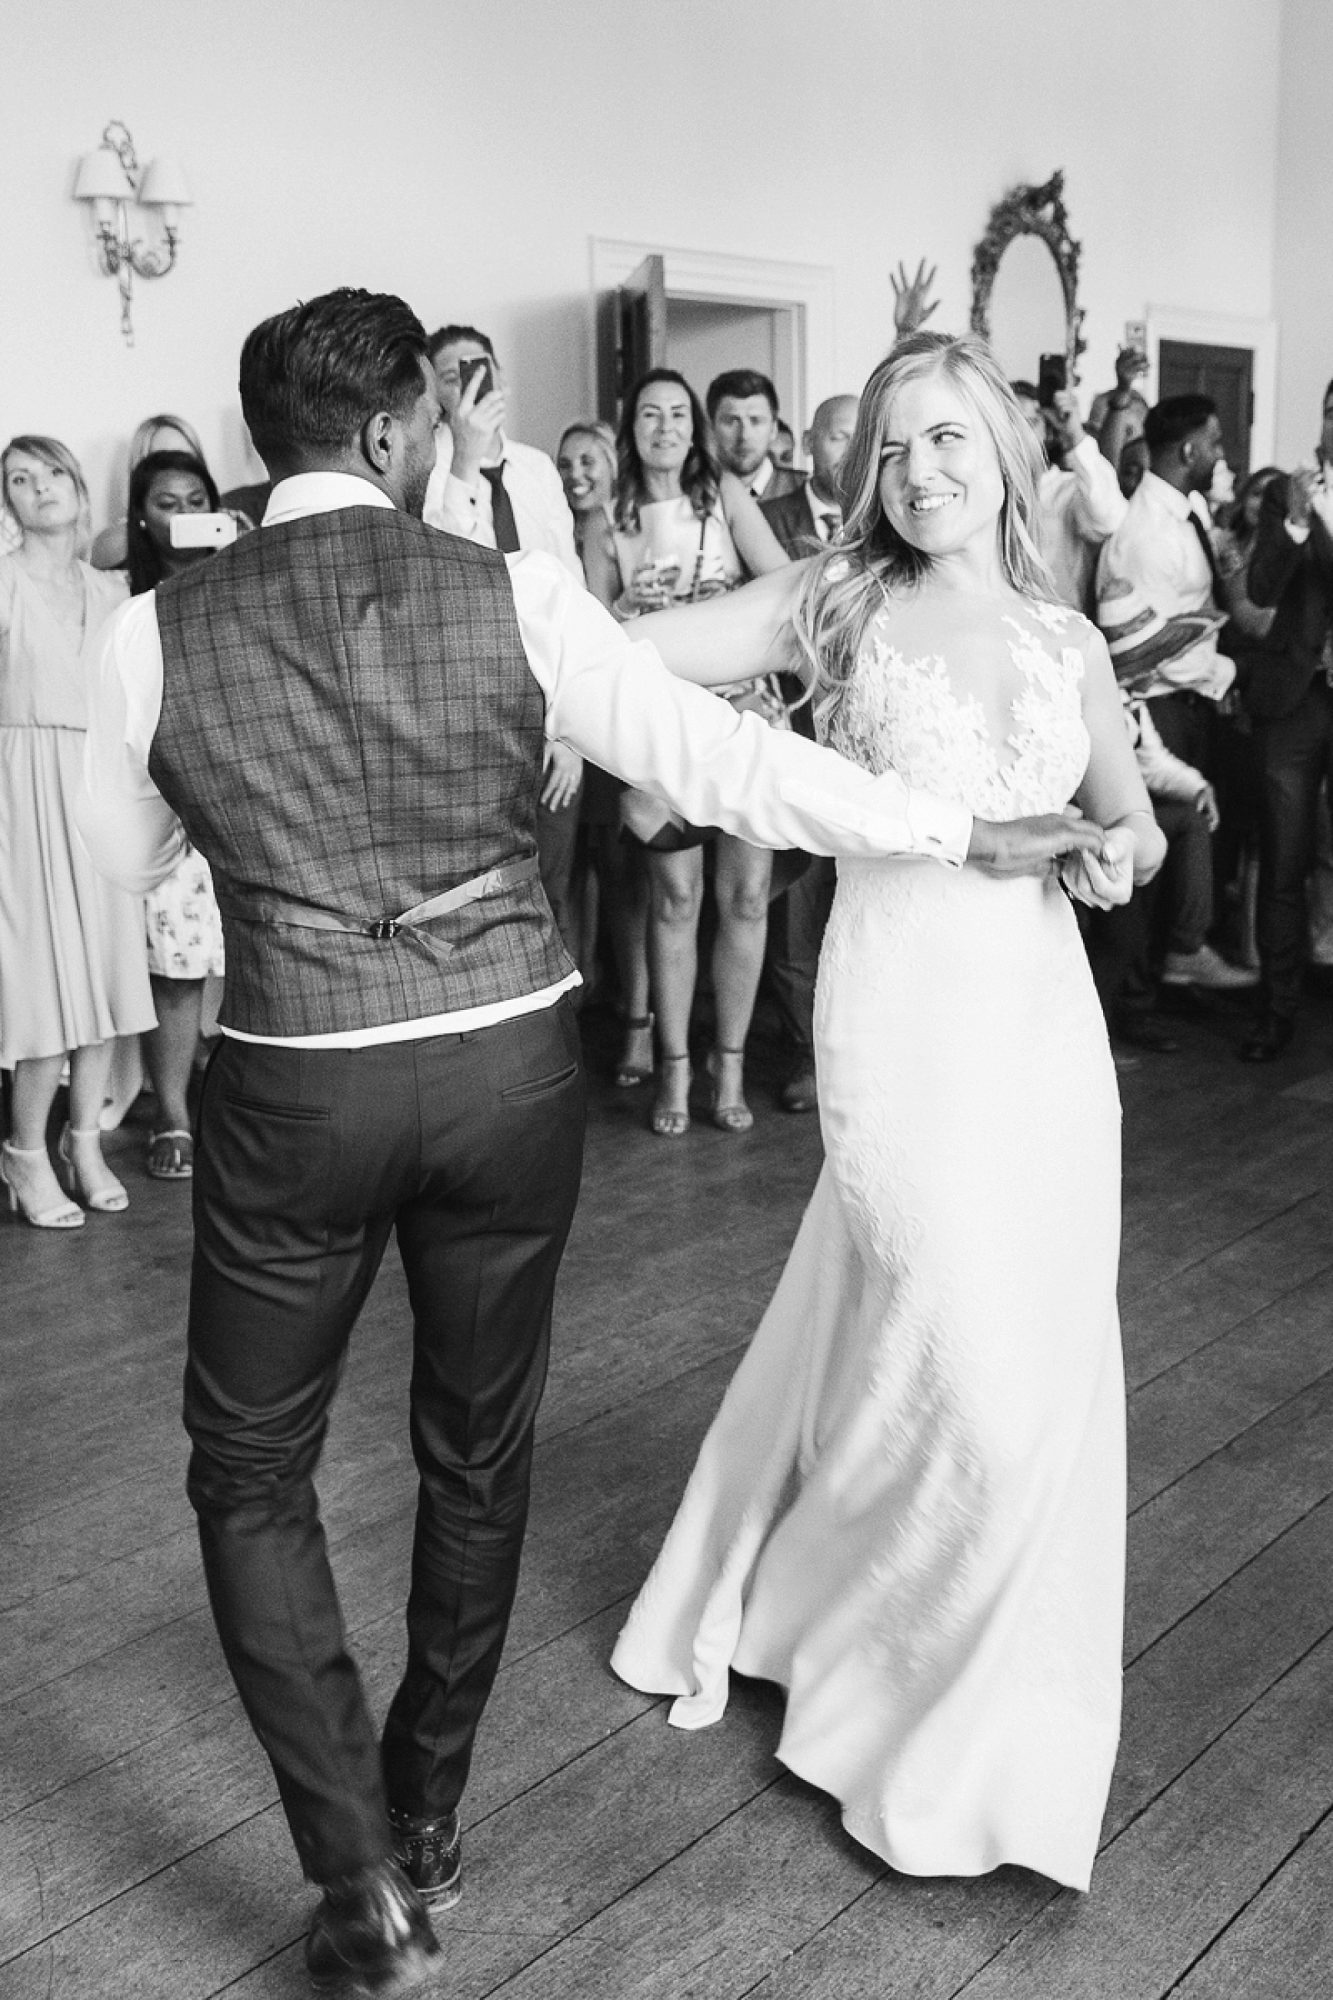 bride and groom dancing at Pynes house wedding in black and white